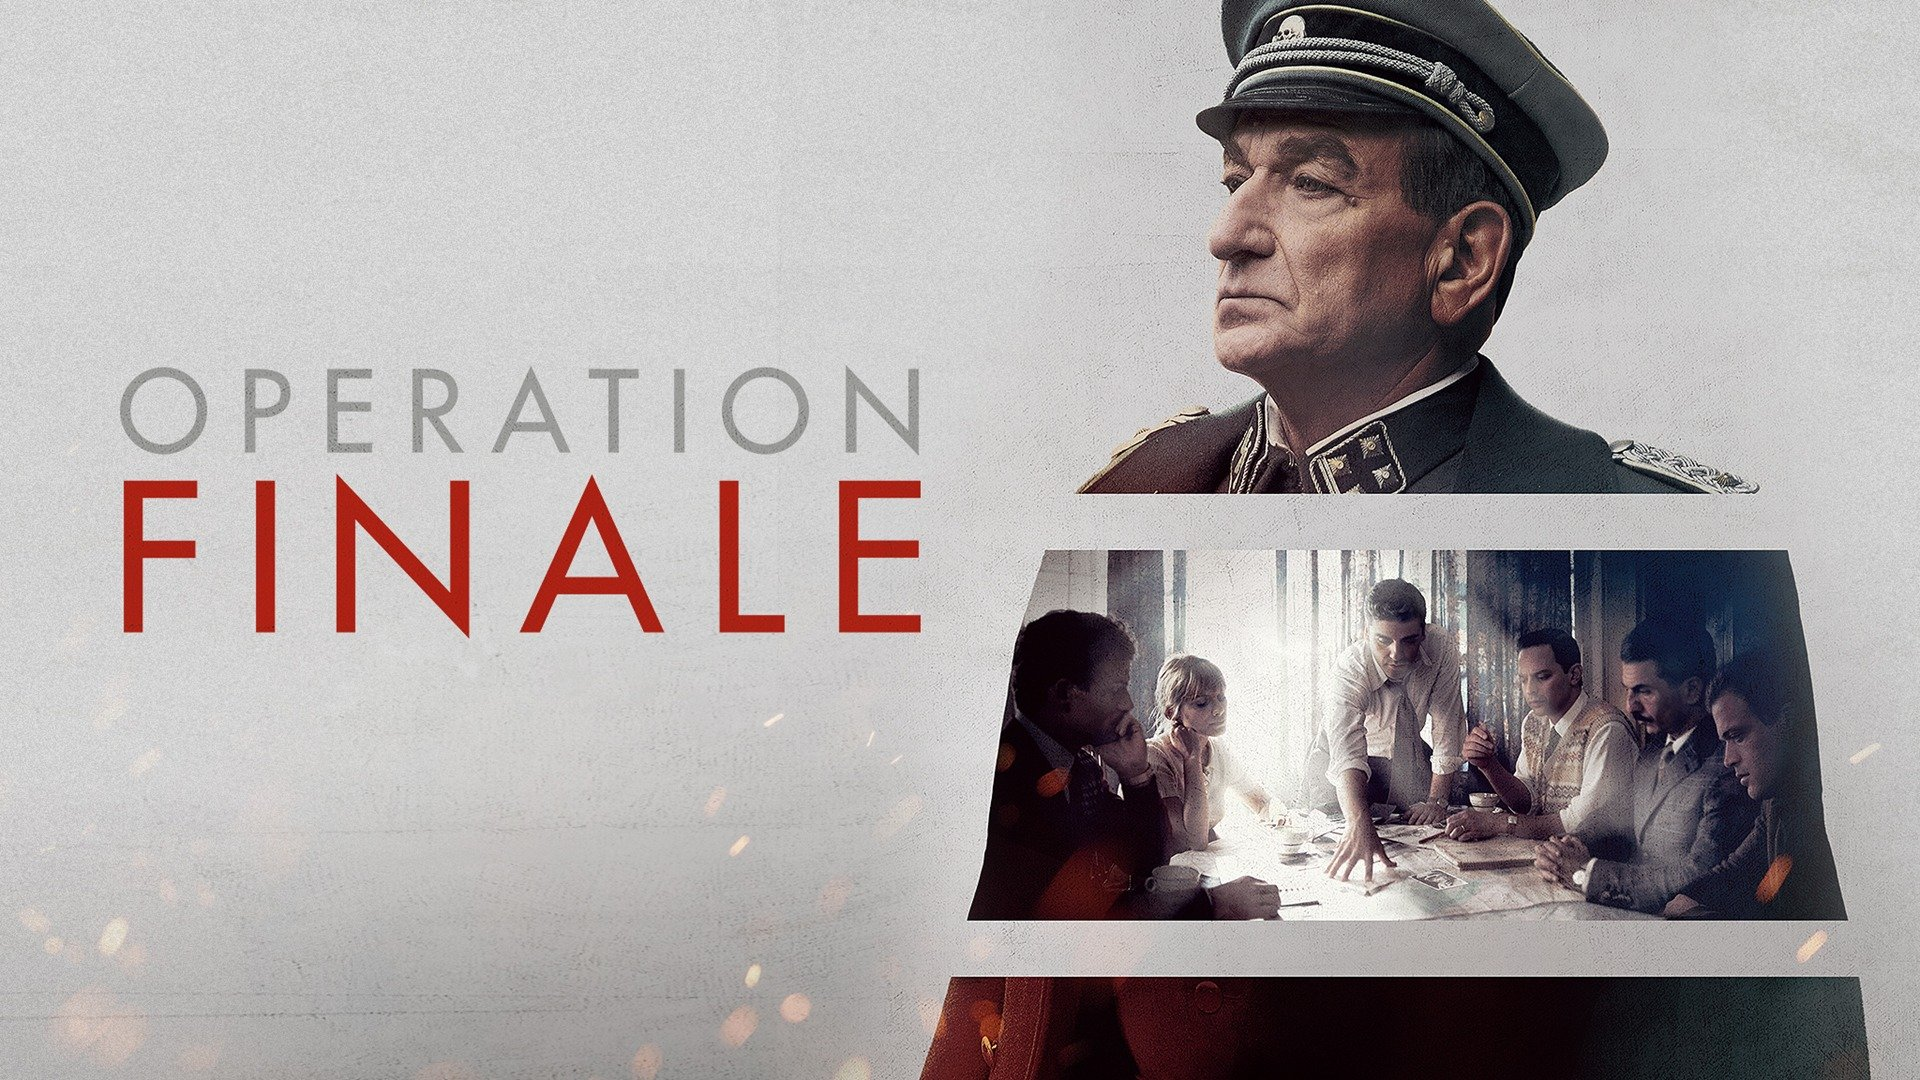 Great Movie Telling about Holocaust